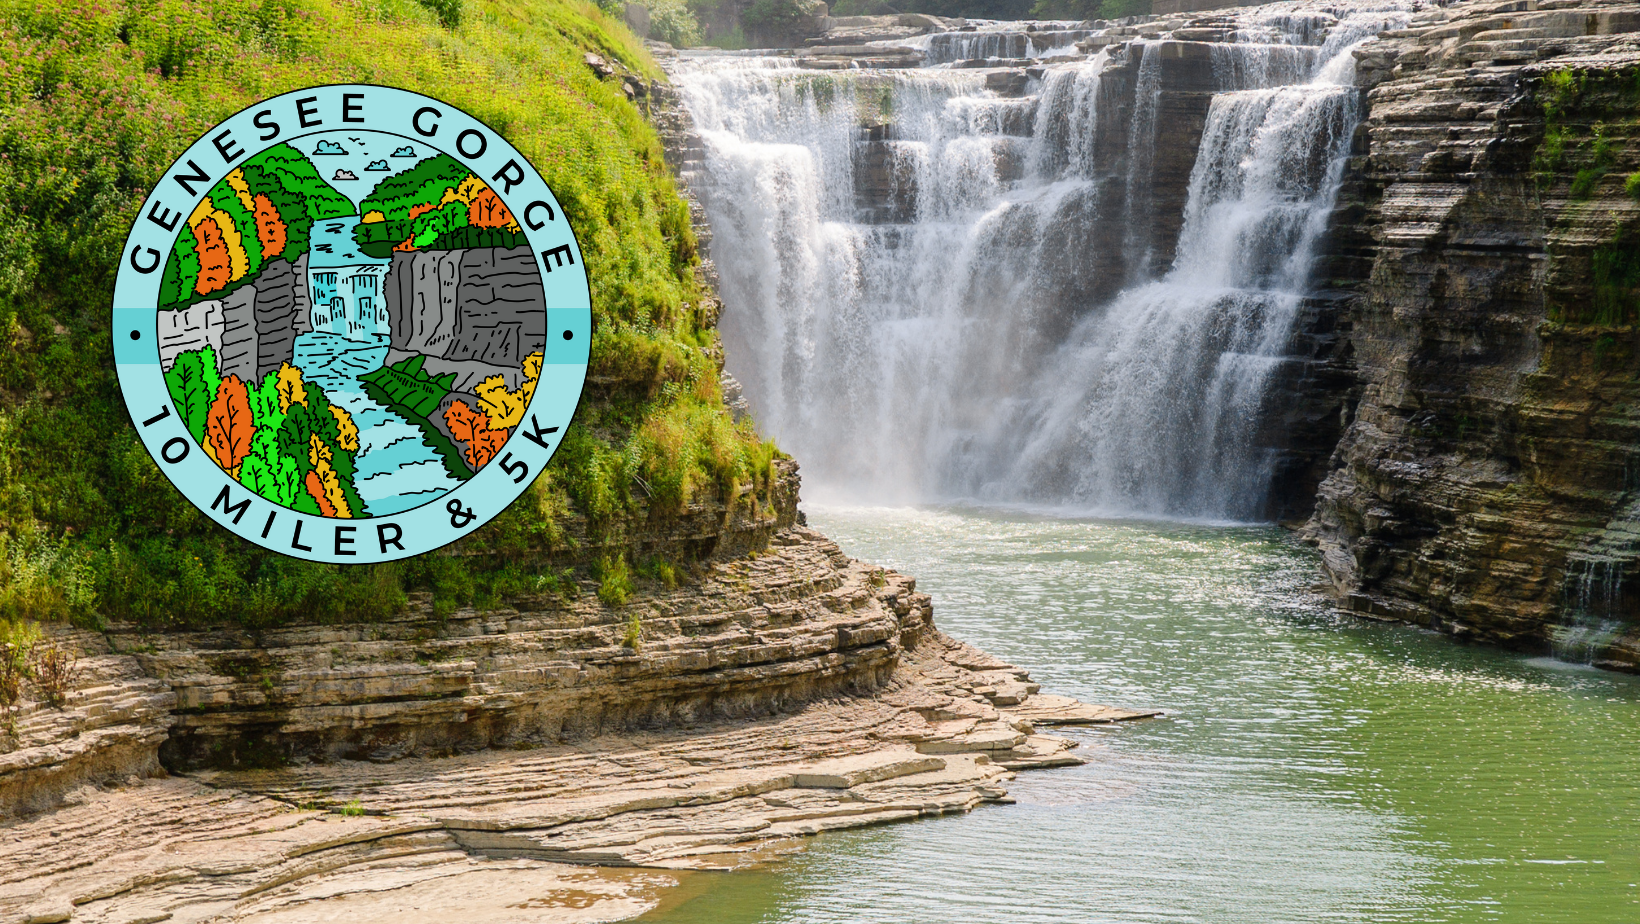 3 Reasons to Visit Letchworth State Park and the Genesee River Gorge